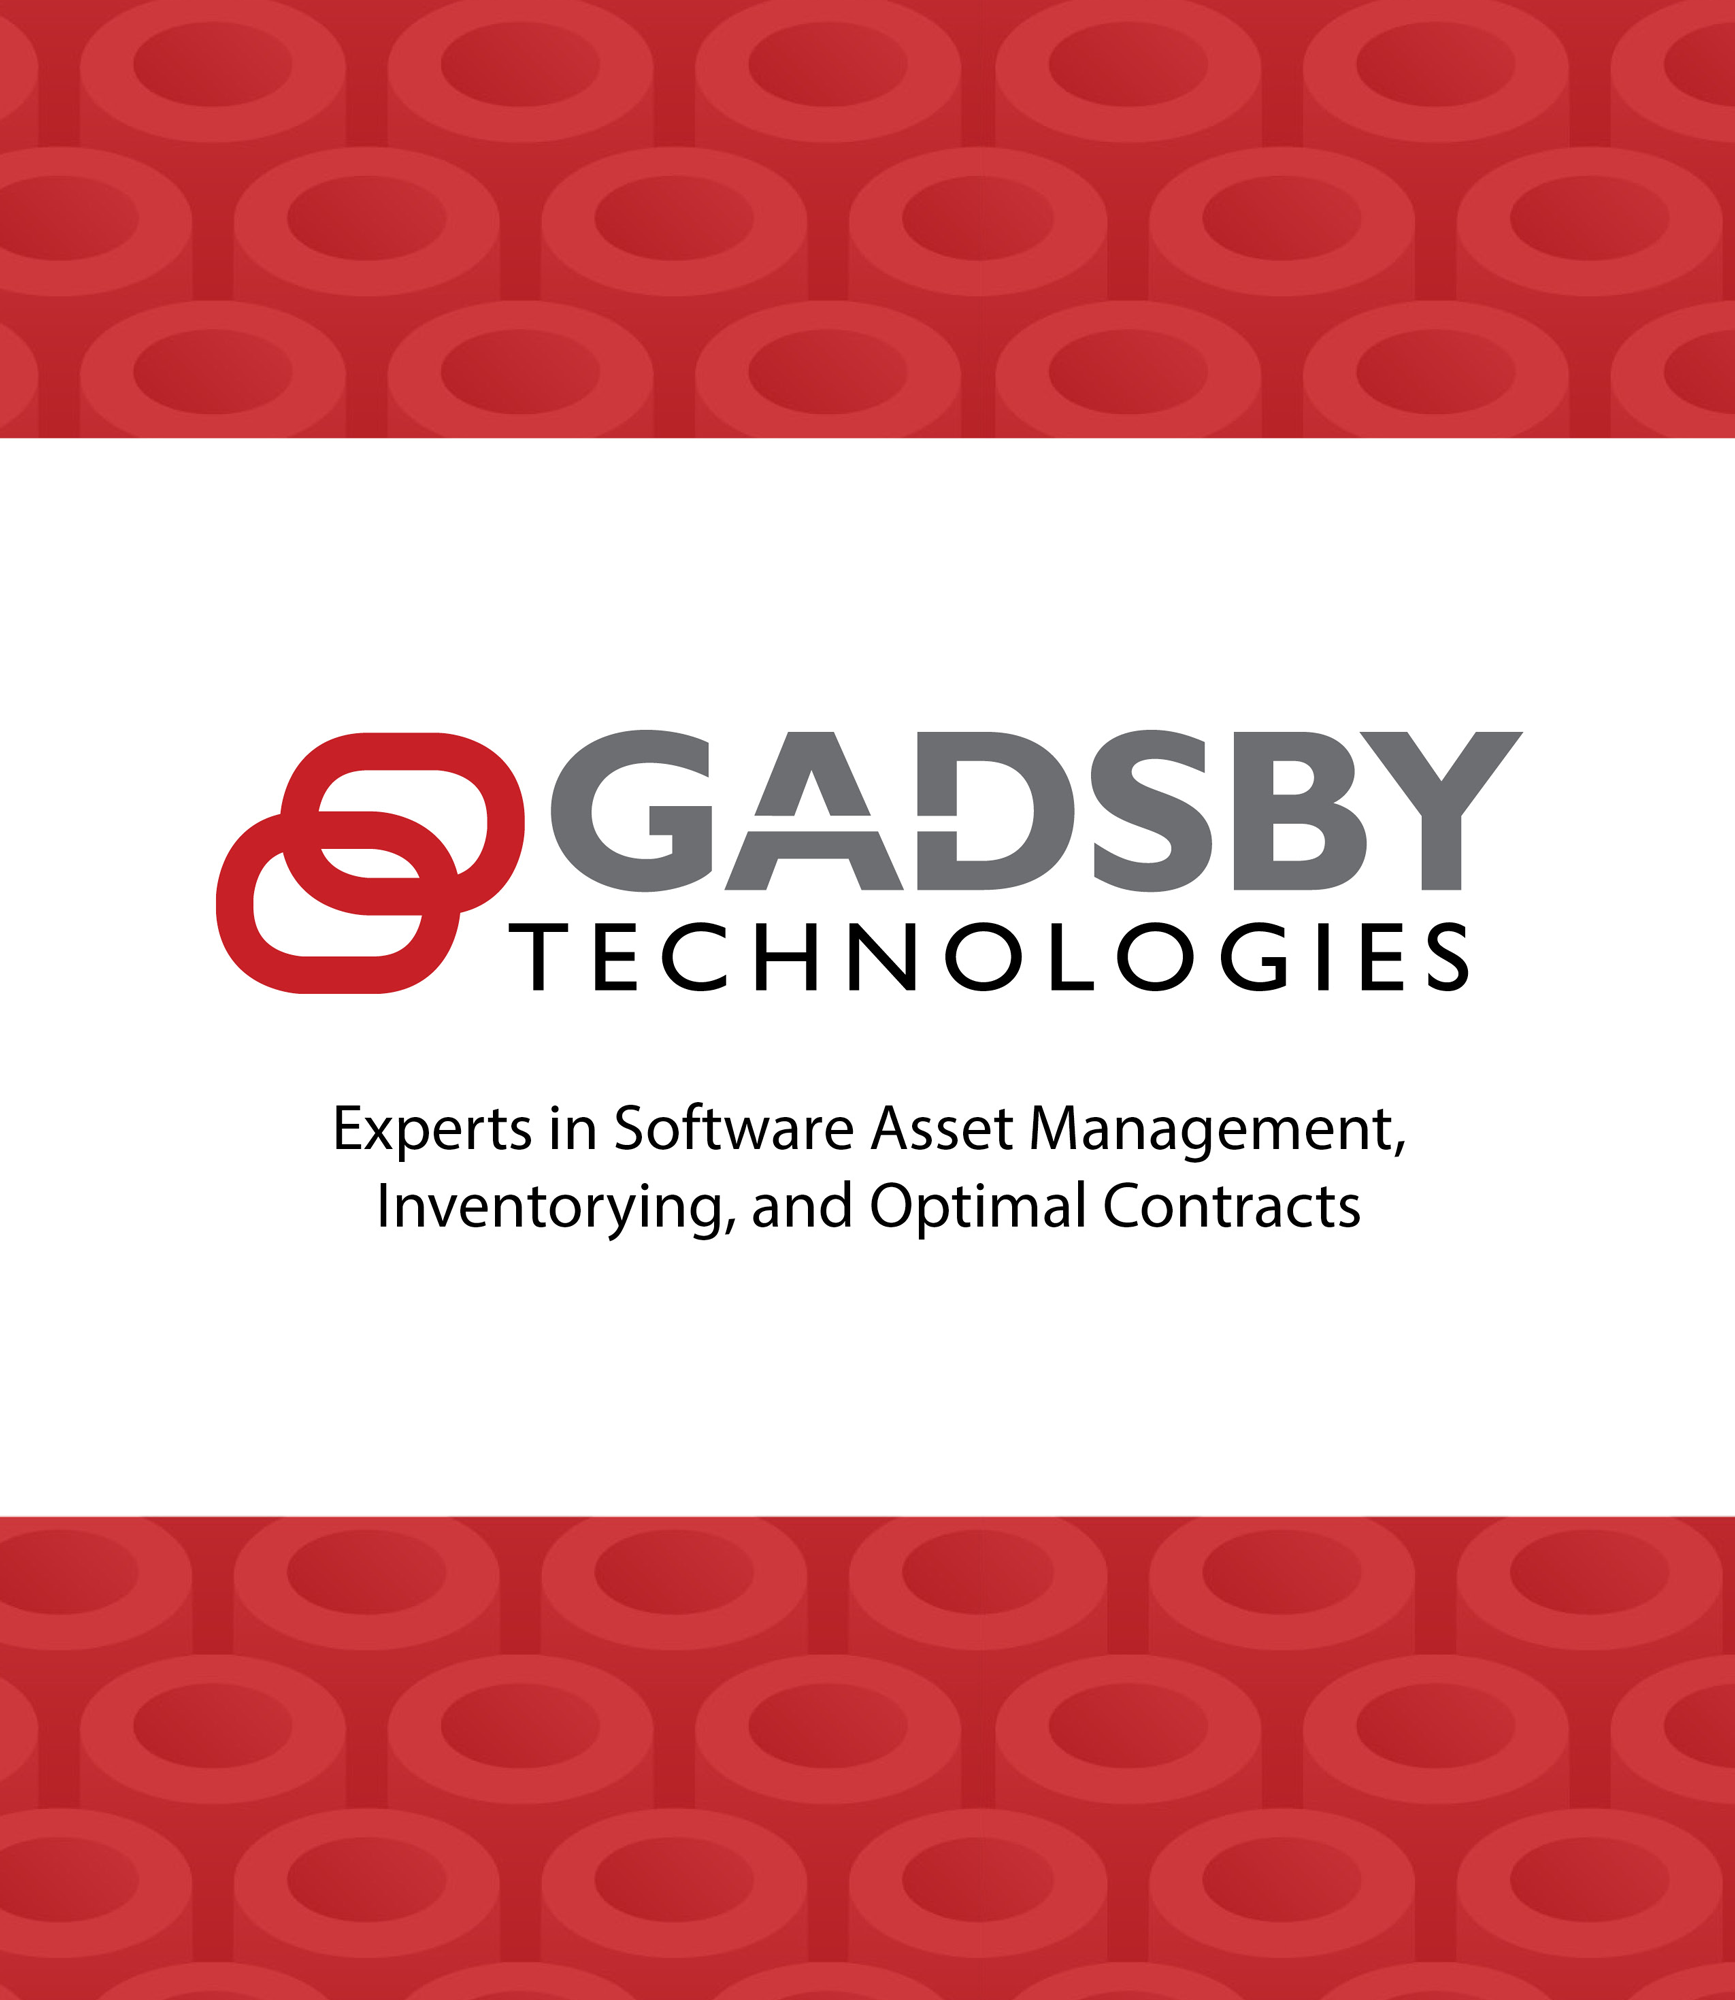 Gadsby-Technologies-Oracle-services-info